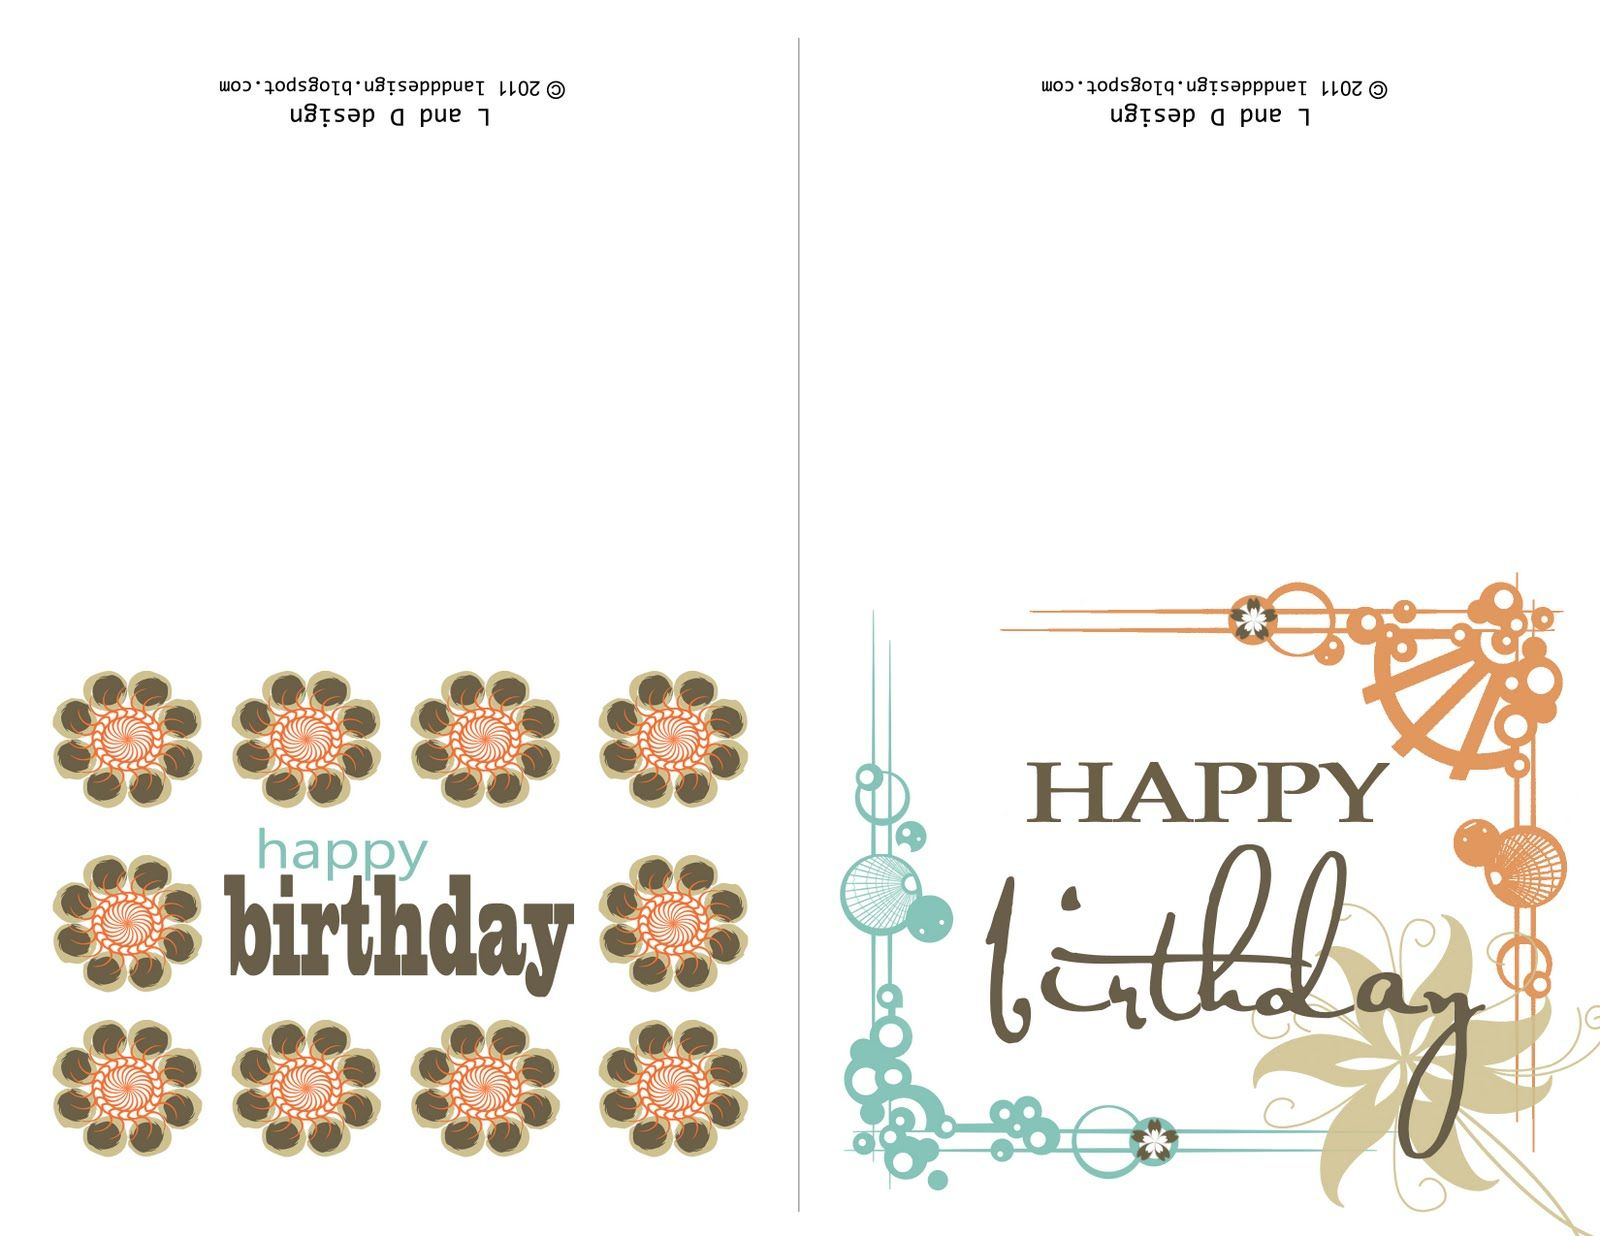 Printable Birthday Cards For Mom | Happy Birthday To You | Pinterest - Free Printable Birthday Cards For Adults